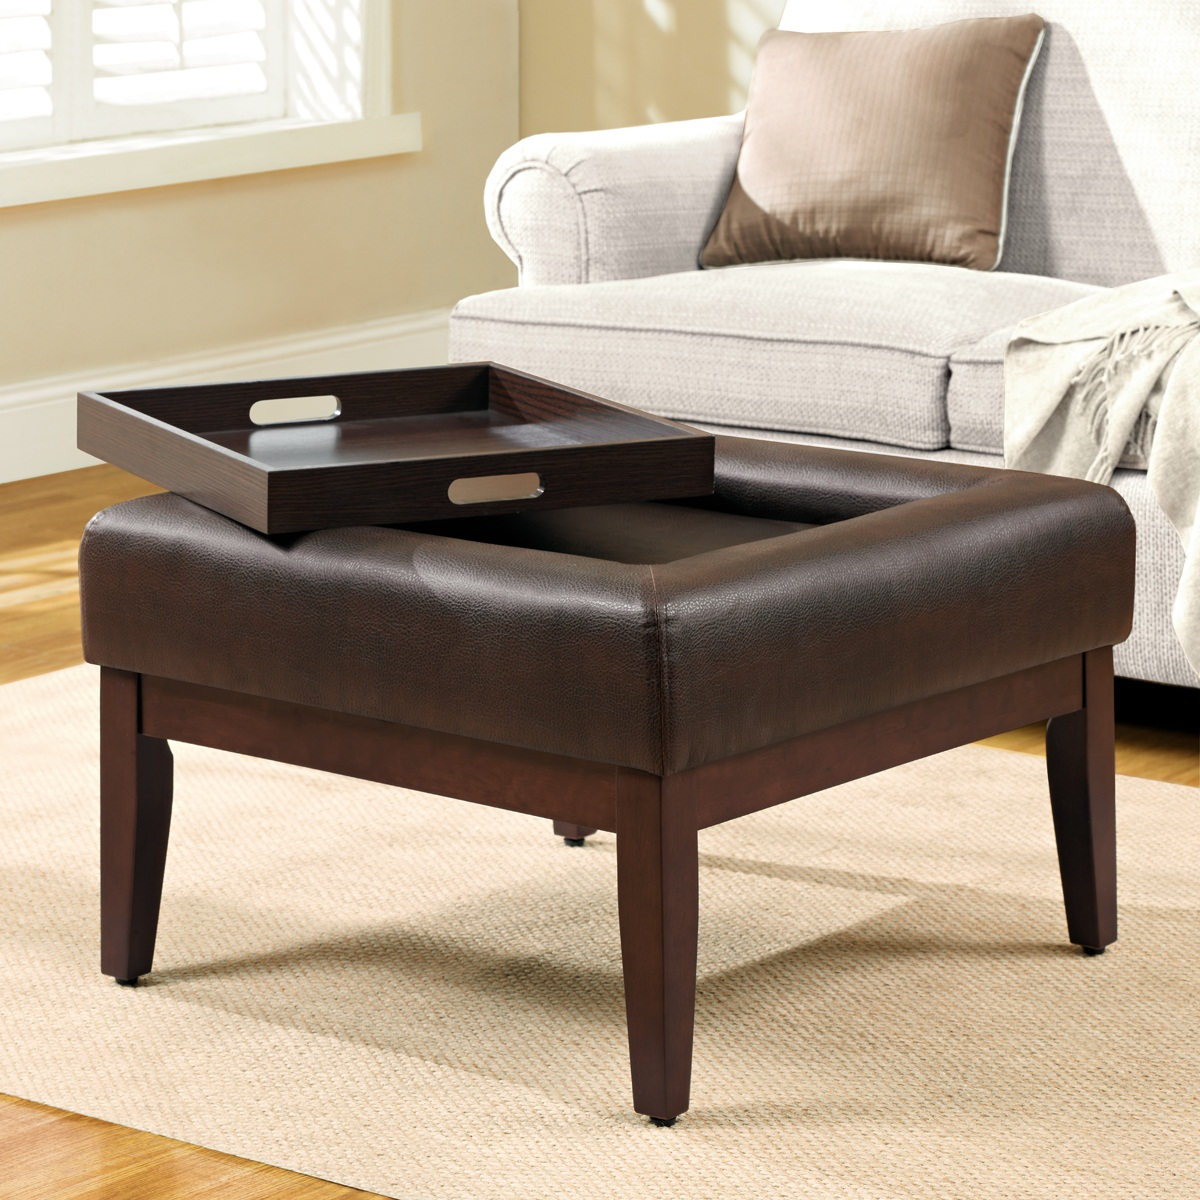 Oversized Square Ottoman Coffee Table Royals Courage